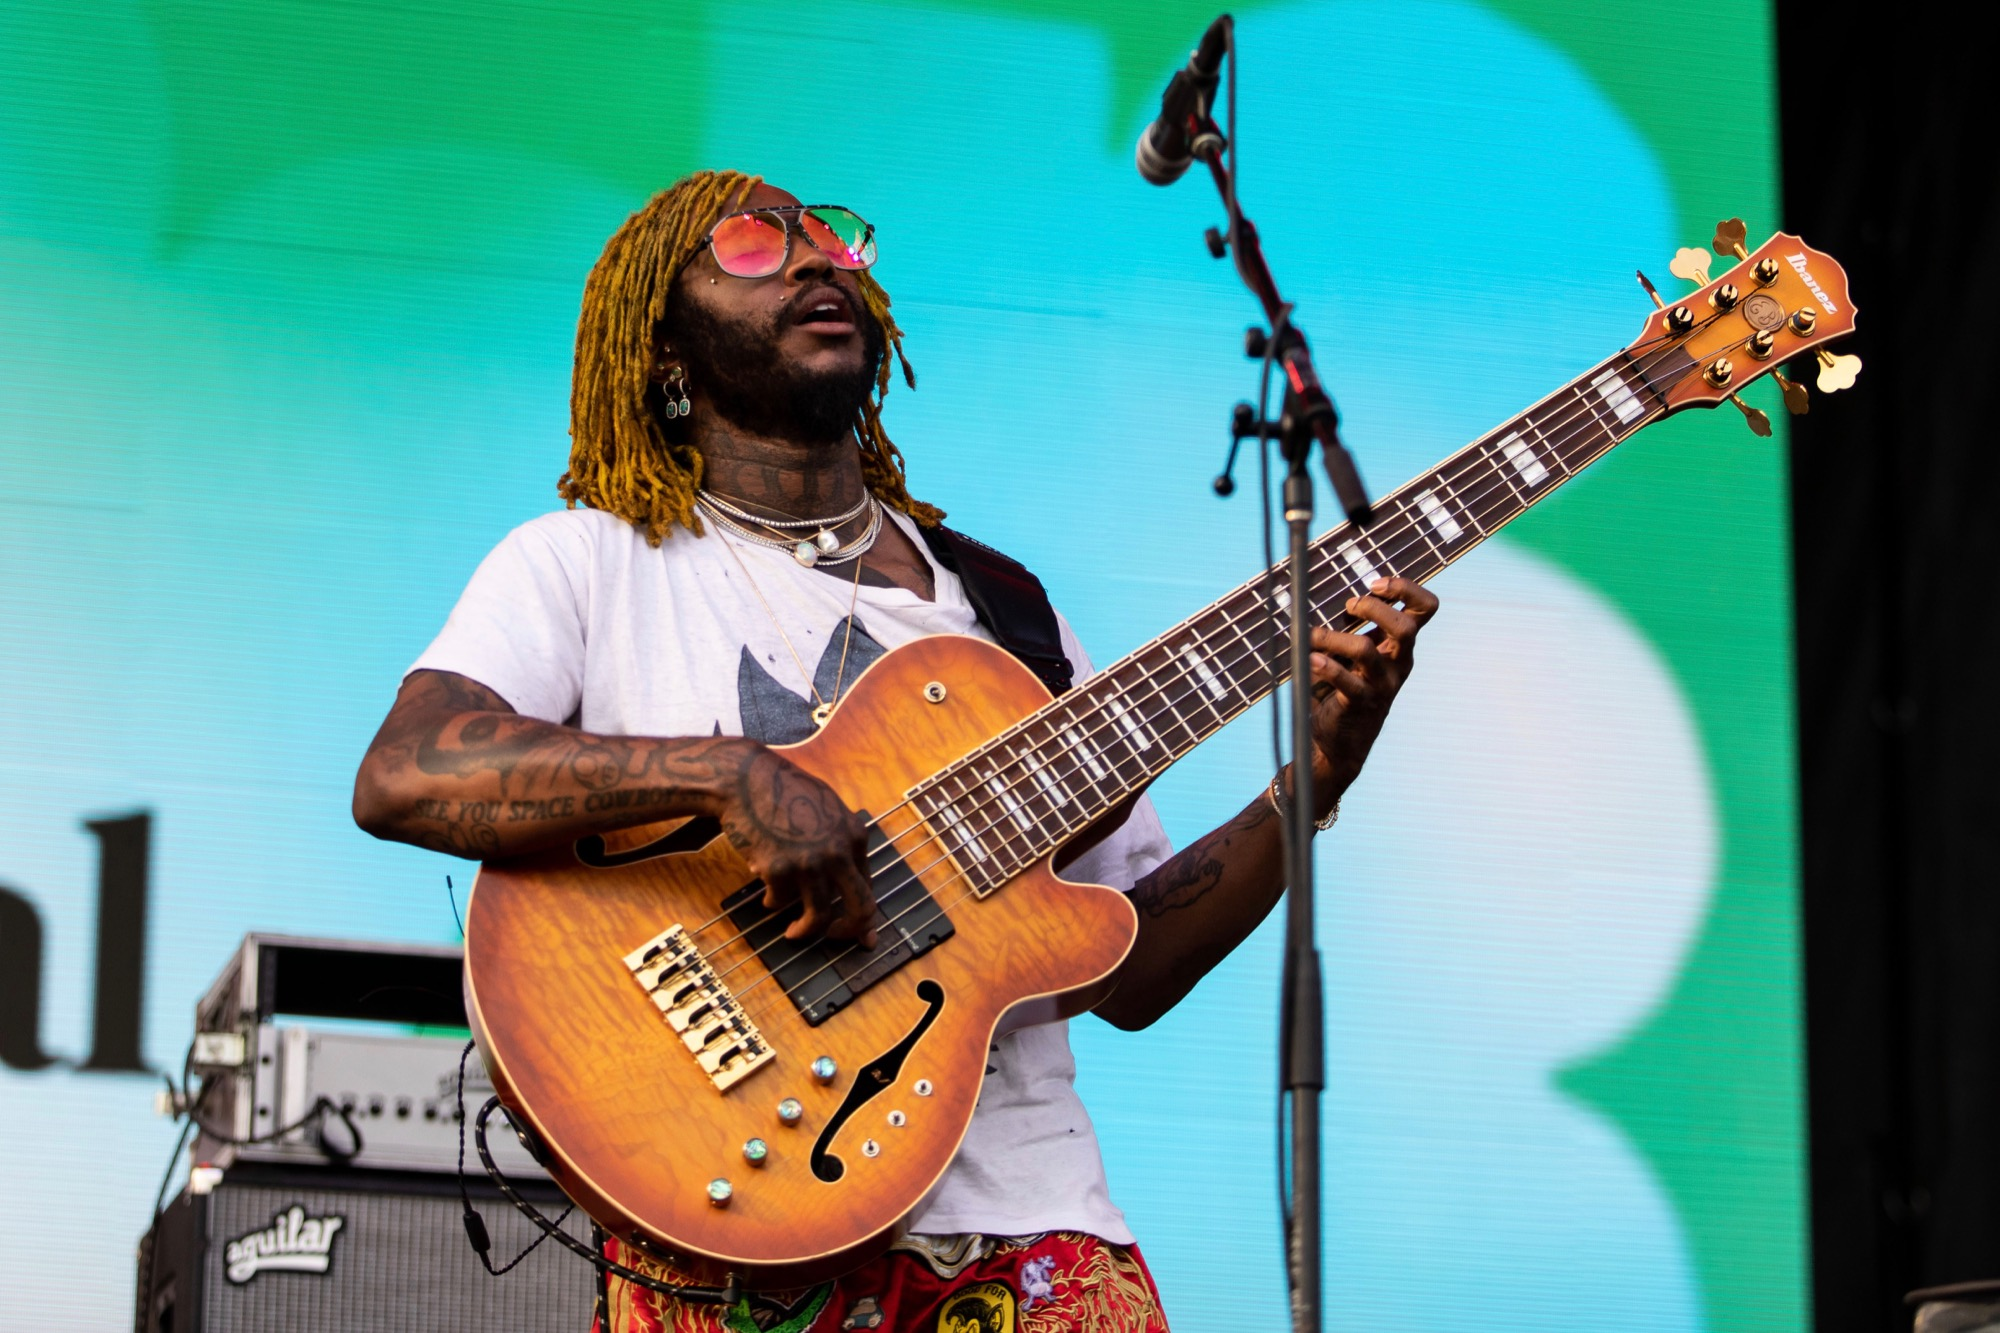 Thundercat performs at the Pitchfork Music Festival in Chicago on Sep. 12, 2021.